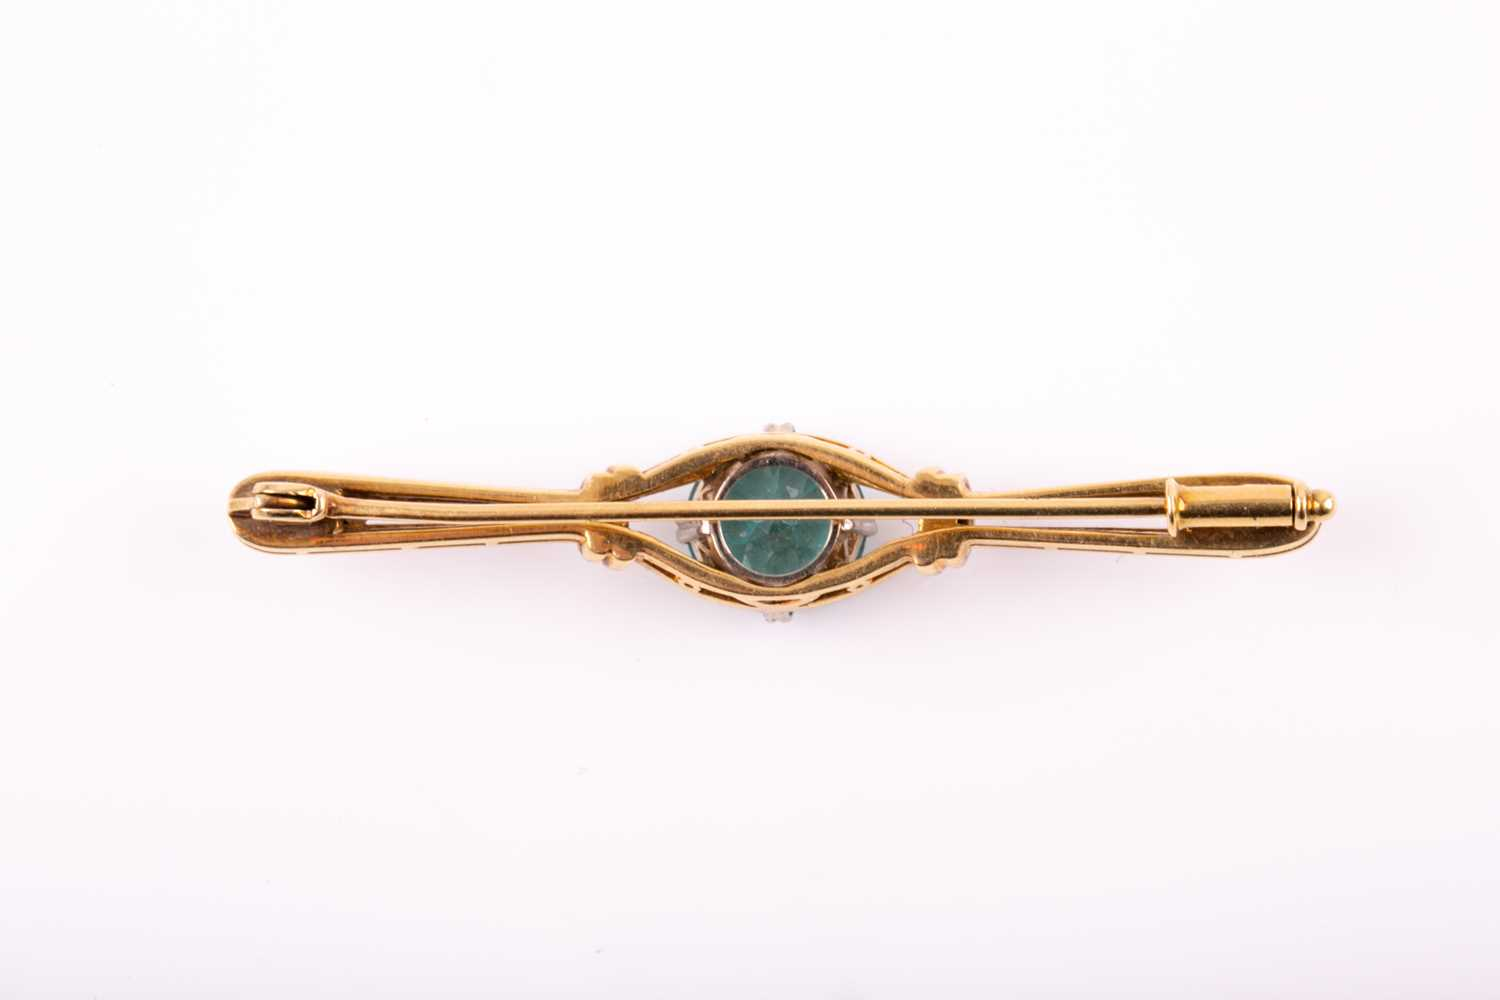 A white and yellow gold and blue zircon brooch, set with a mixed round-cut zircon measuring - Image 3 of 4